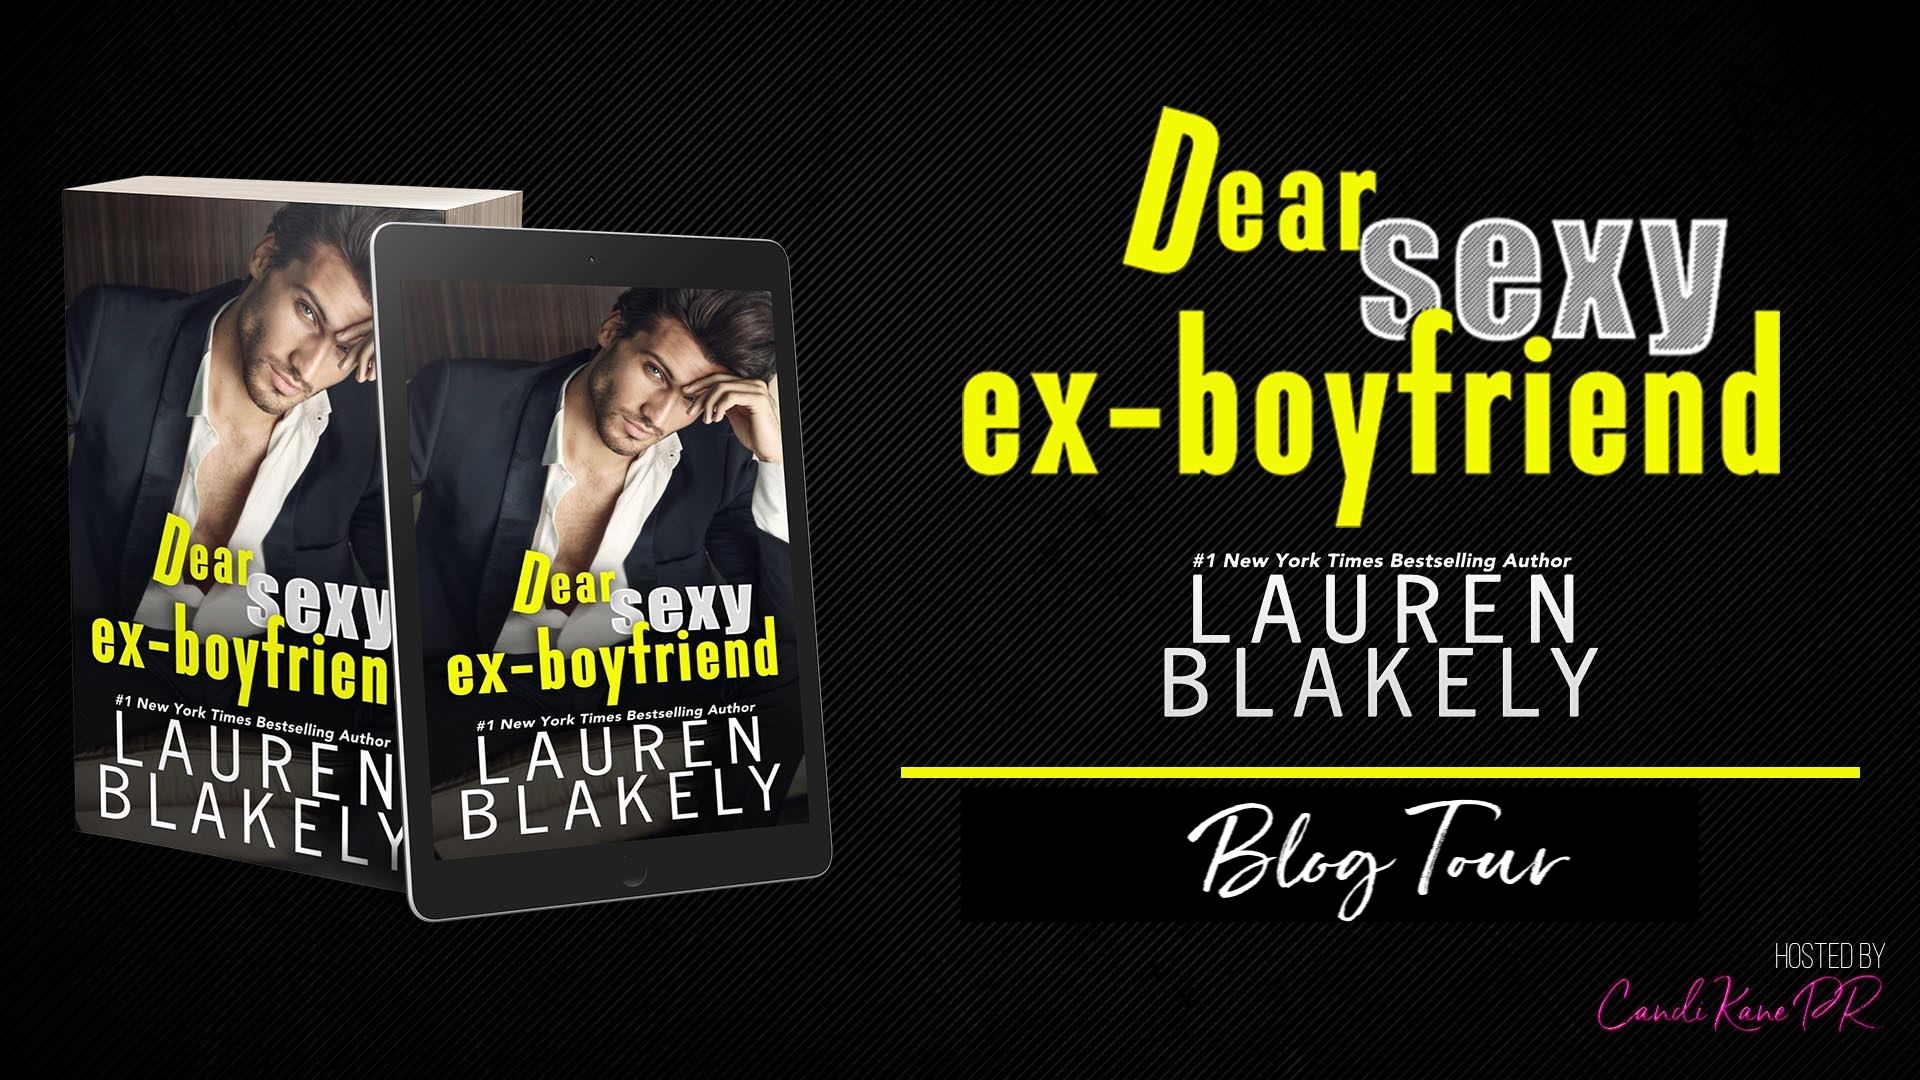 Review: Dear Sexy Ex Boyfriend by Lauren Blakely